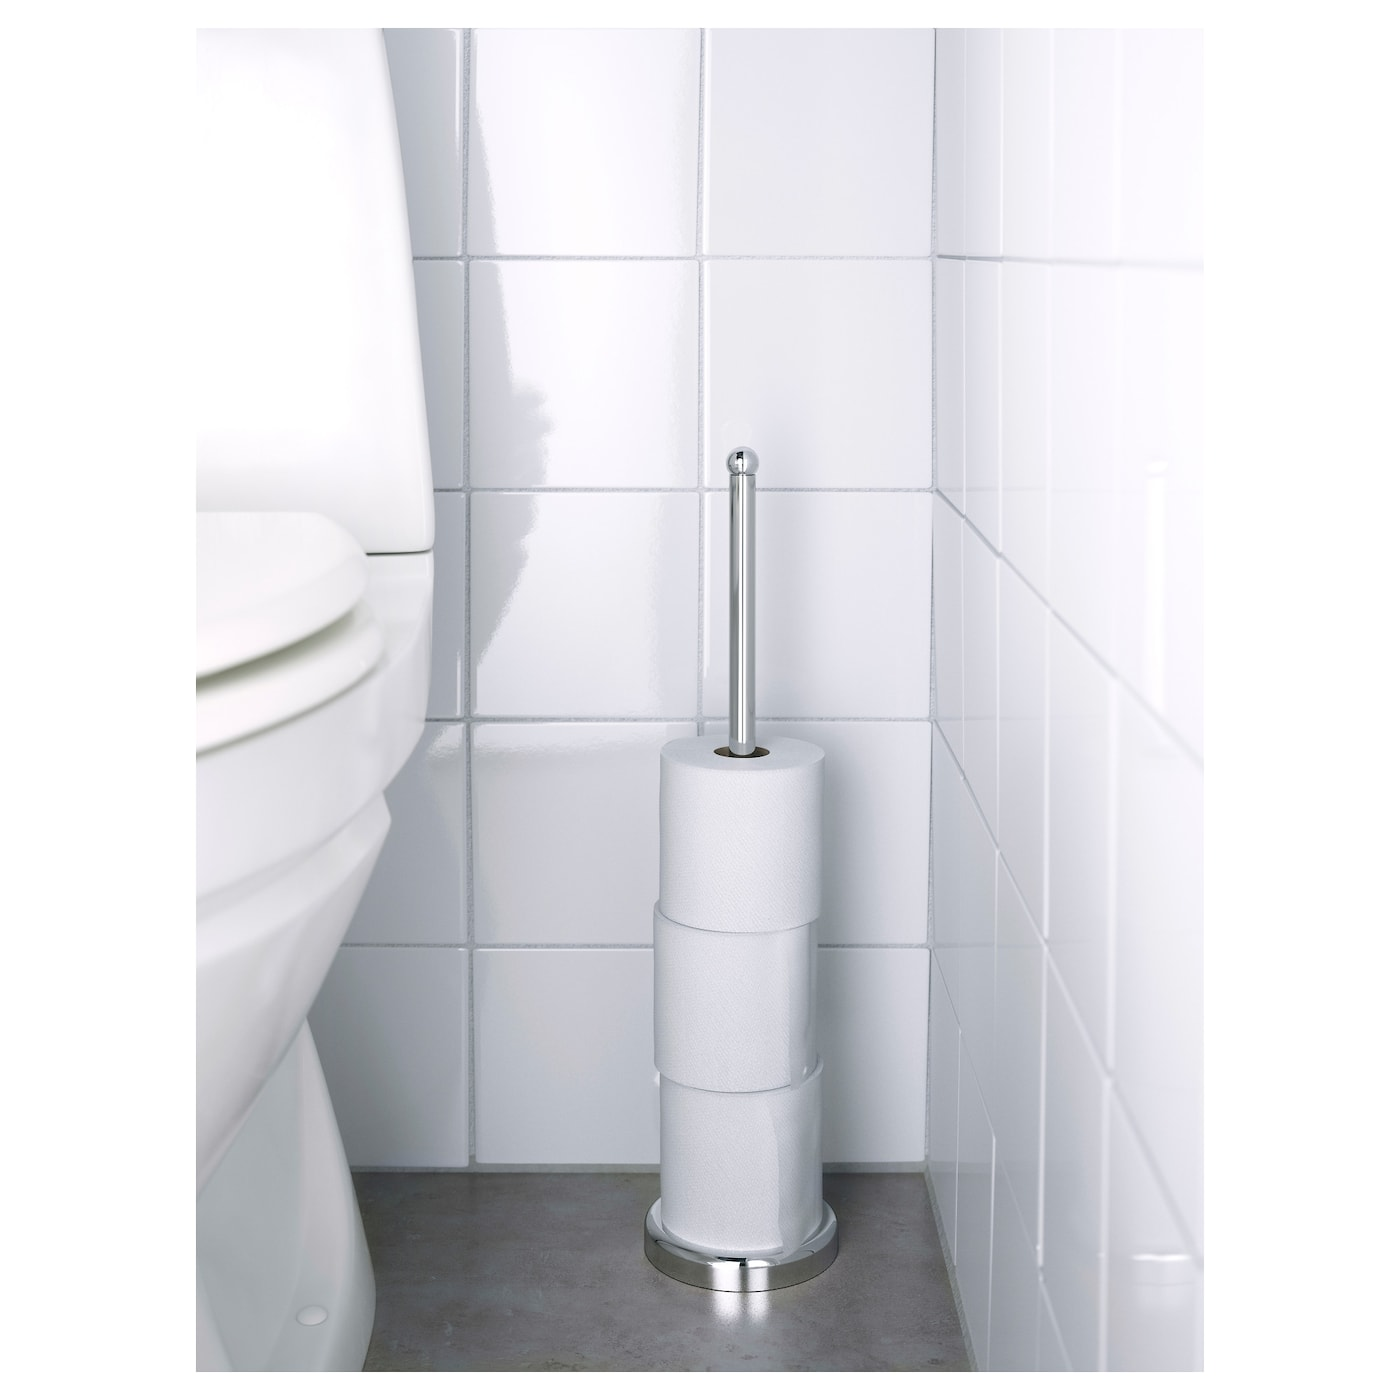 IKEA VOXNAN toilet roll stand The chrome finish is durable and resistant to corrosion.